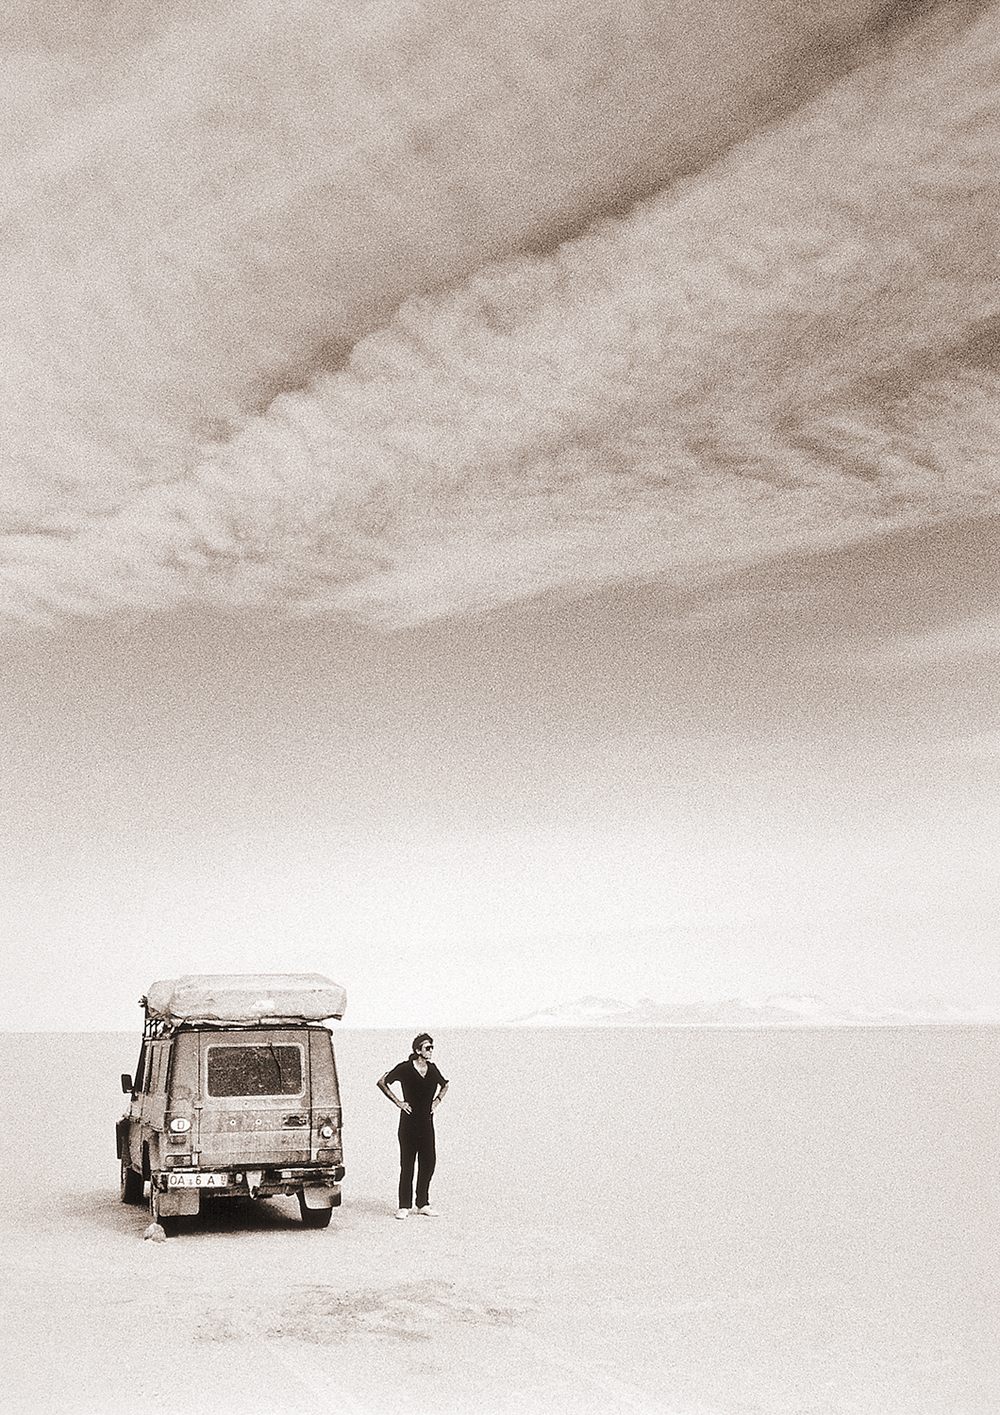 Photo ©Drew Megarry/Sahara Desert, Algeria. Looking for my cars keys.